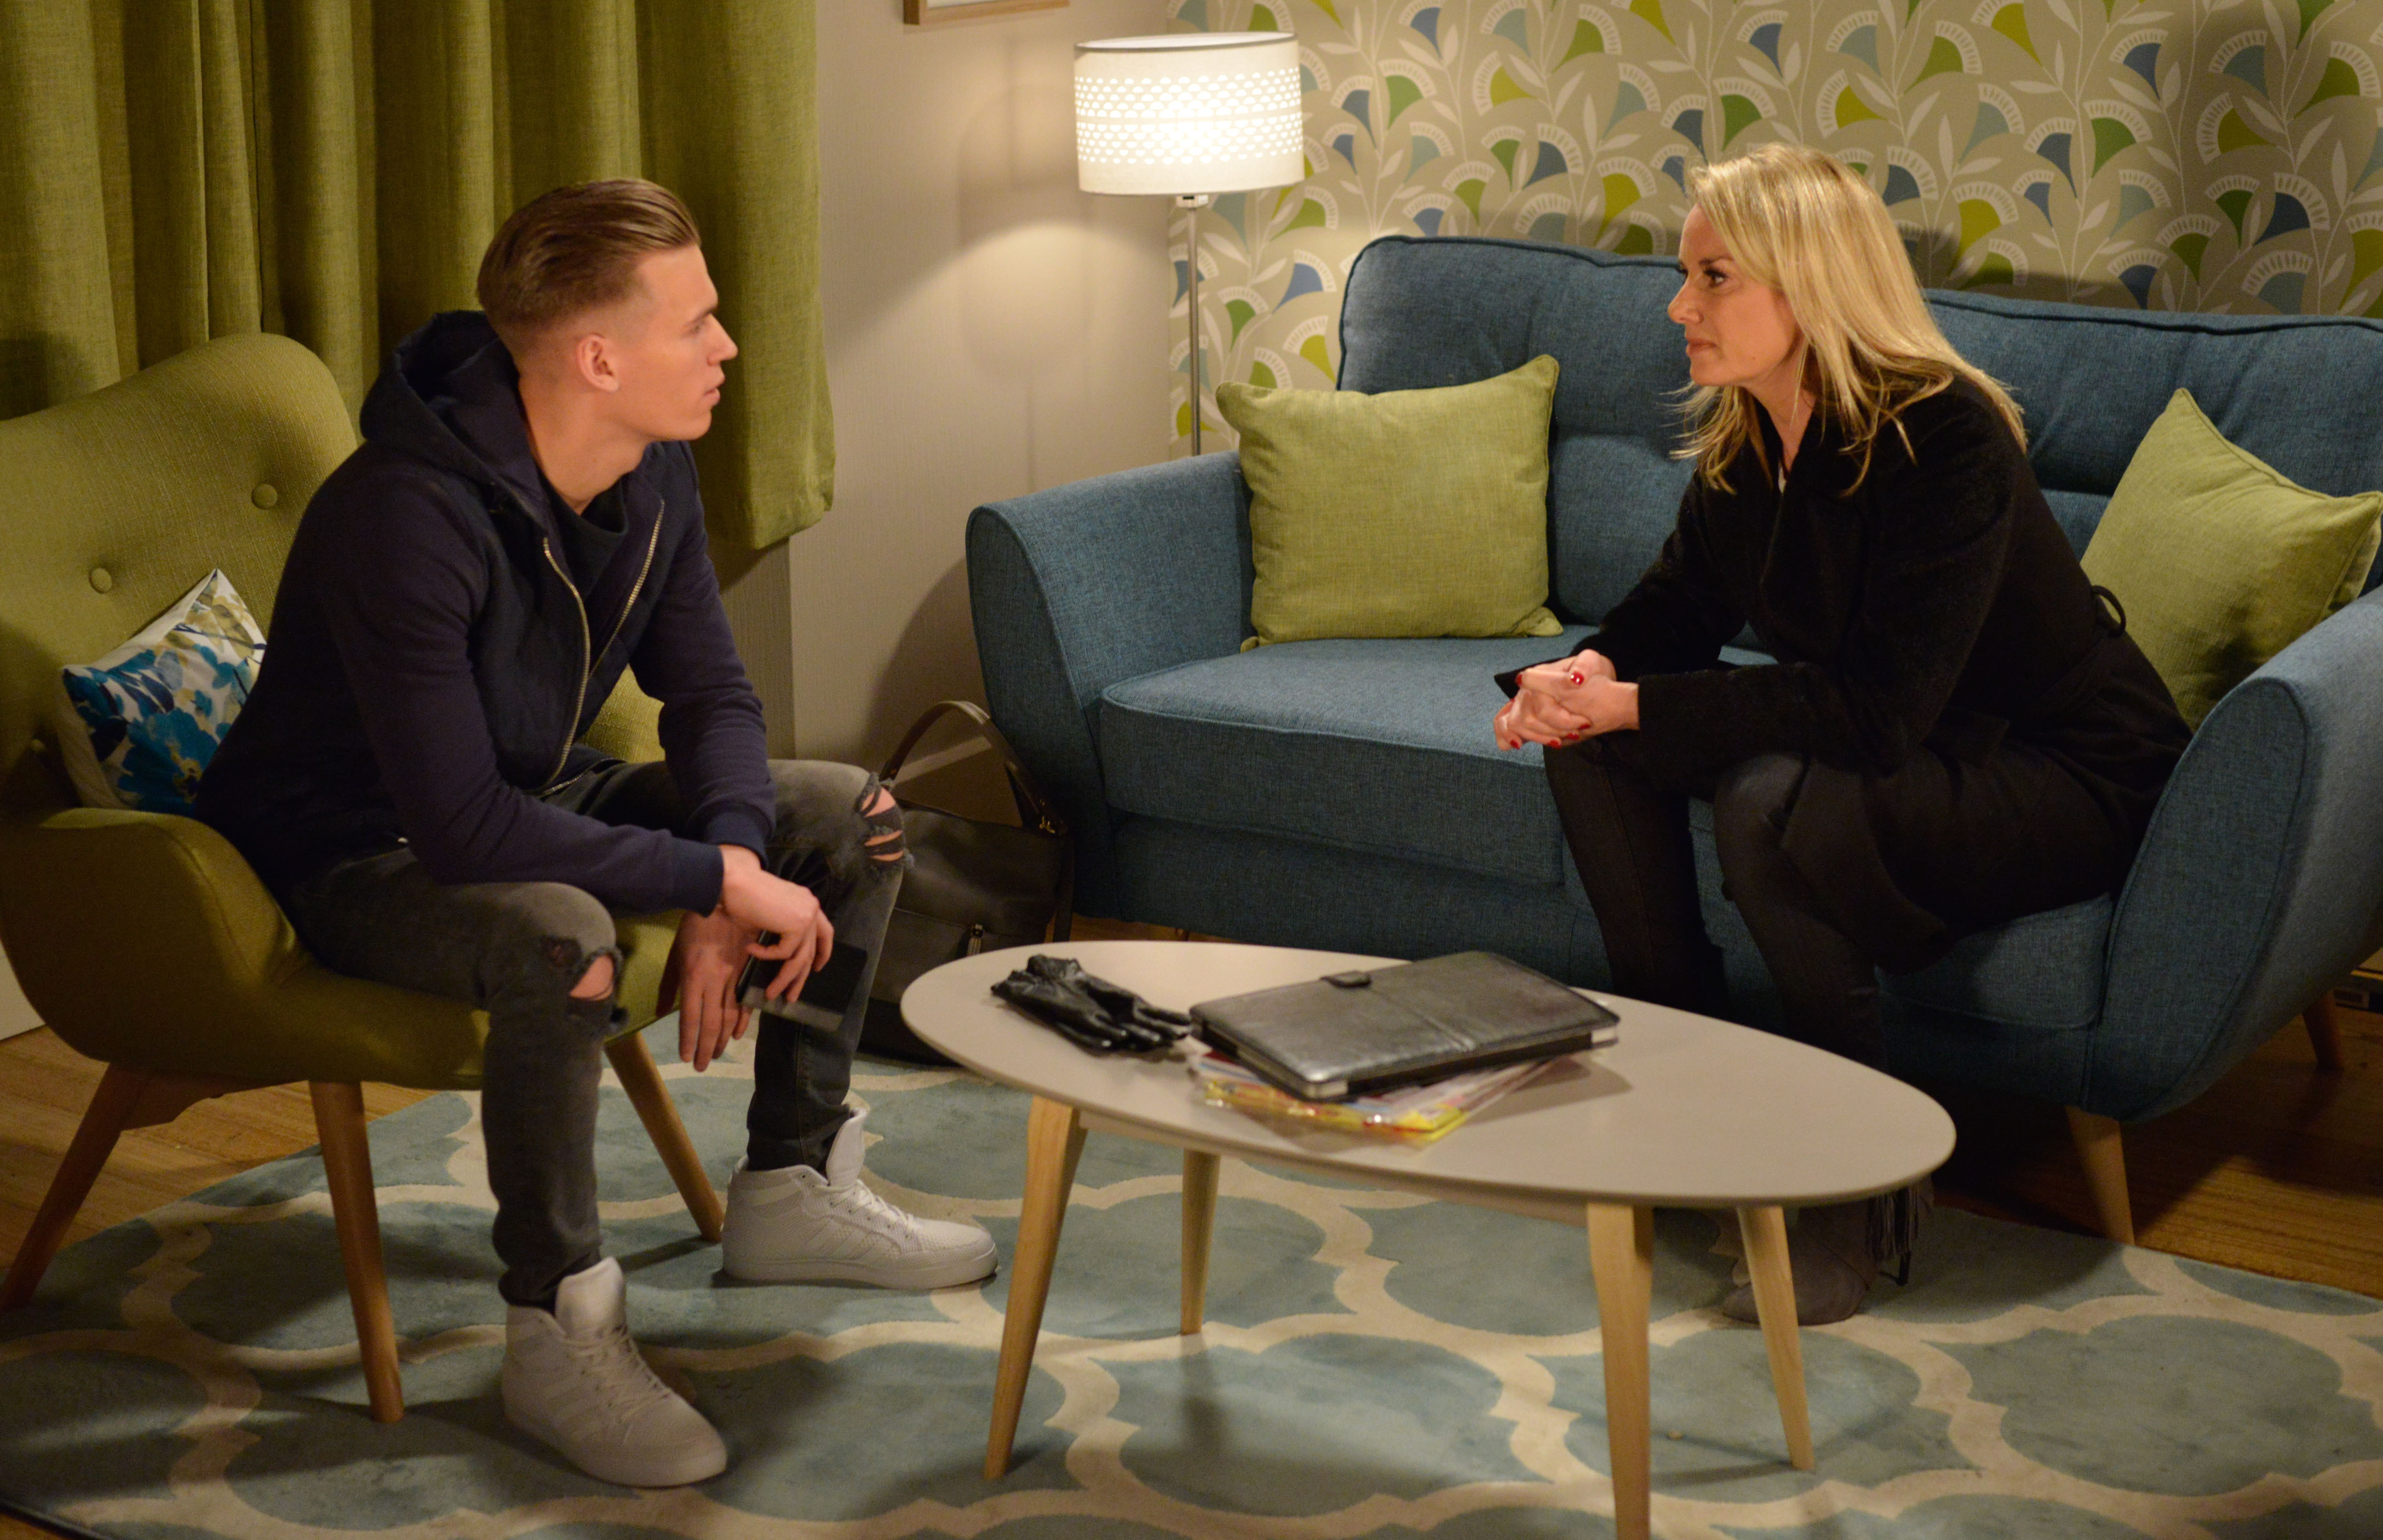 EastEnders - January-April 2018 - 5652